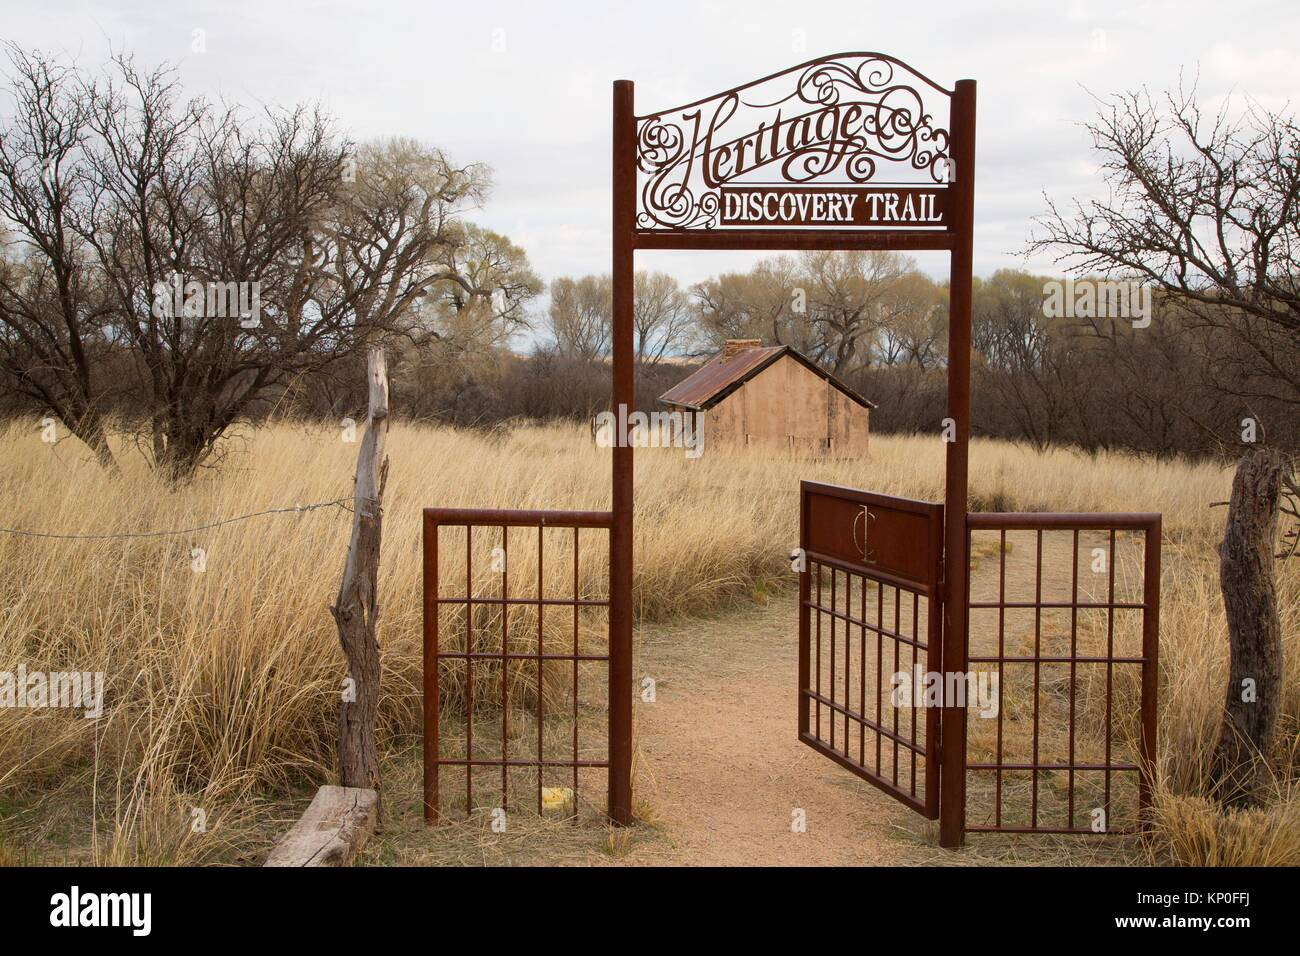 Heritage Discovery Trail gateway, Las Cienegas National Conservation Area, Arizona. - Stock Image